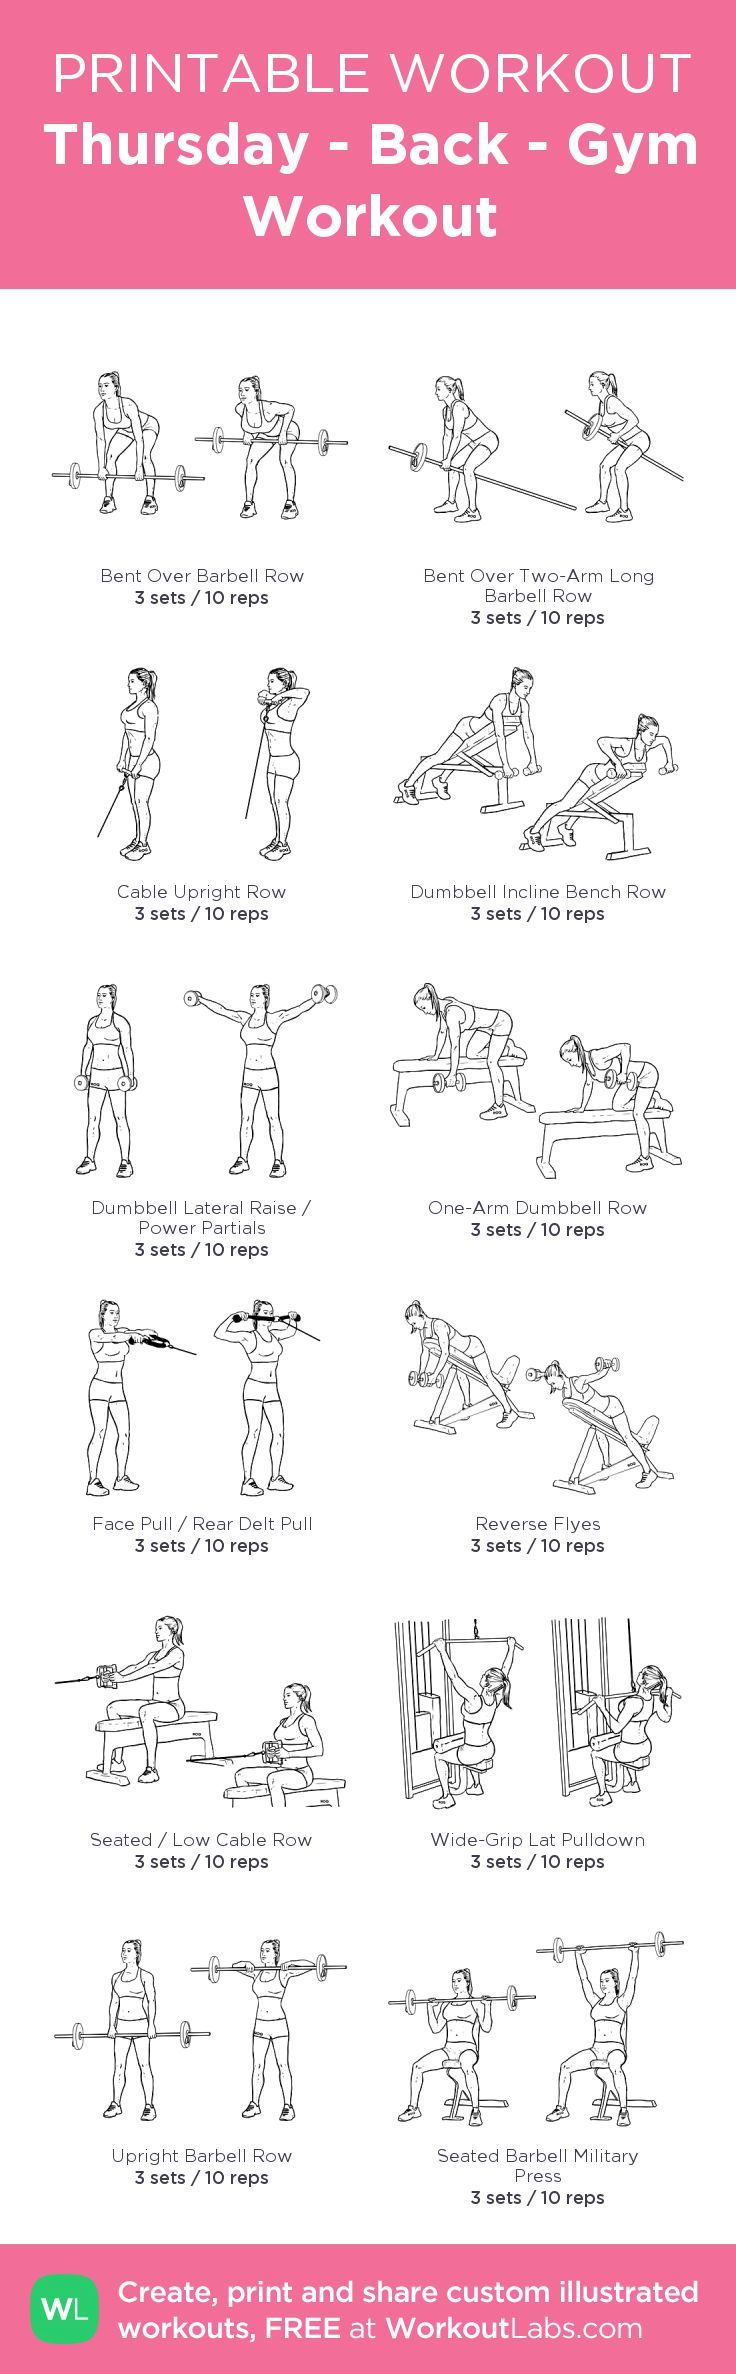 Abs Workout: These five simple exercises are all you need to tone up in less than 10 minutes a day!